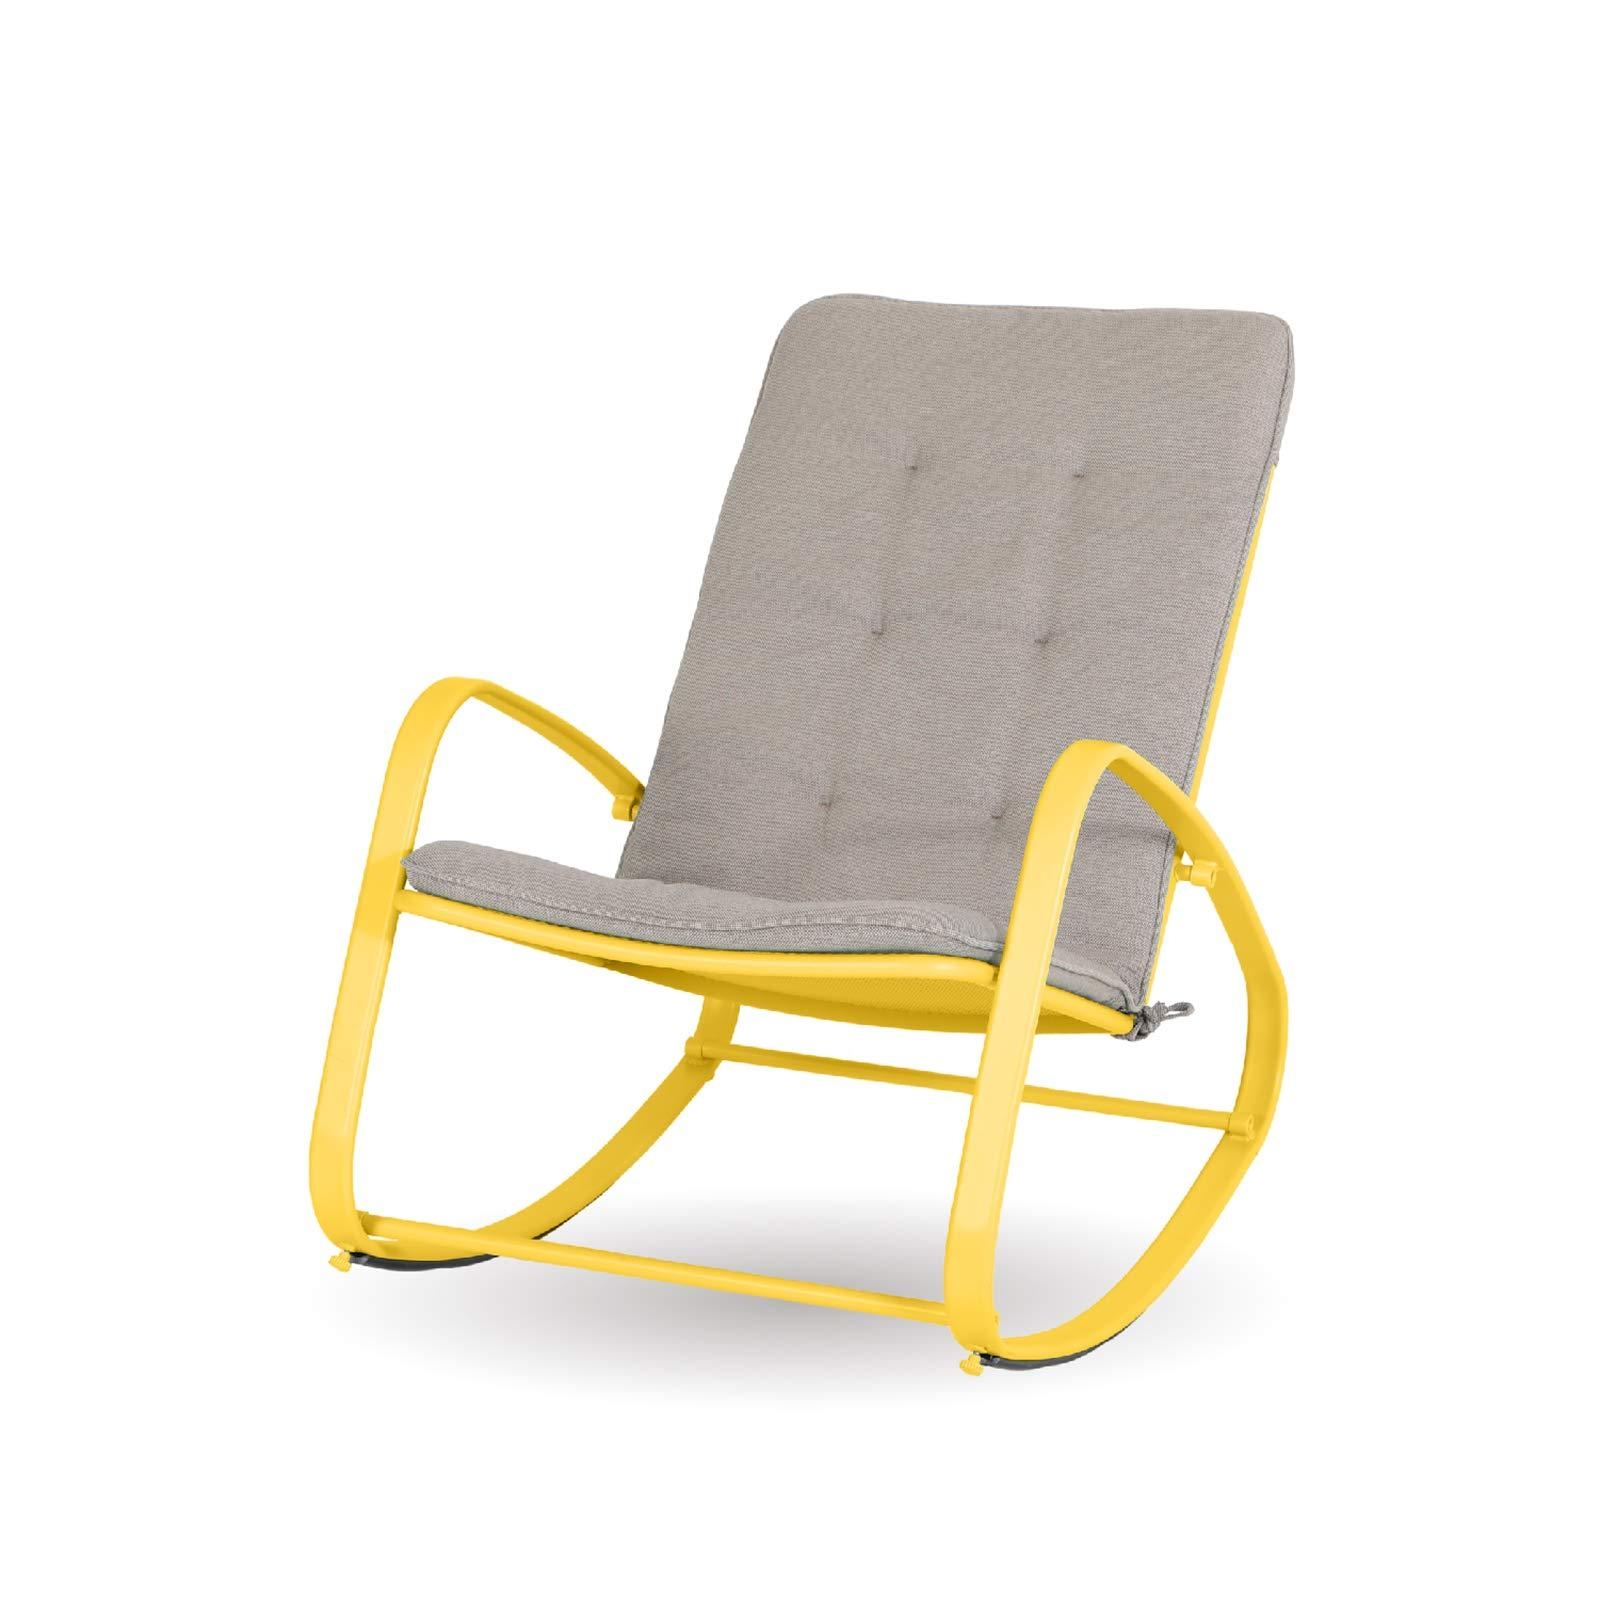 Sophia & William Outdoor Patio Rocking Chair Padded Steel Rocker Chairs Support 300lbs Yellow